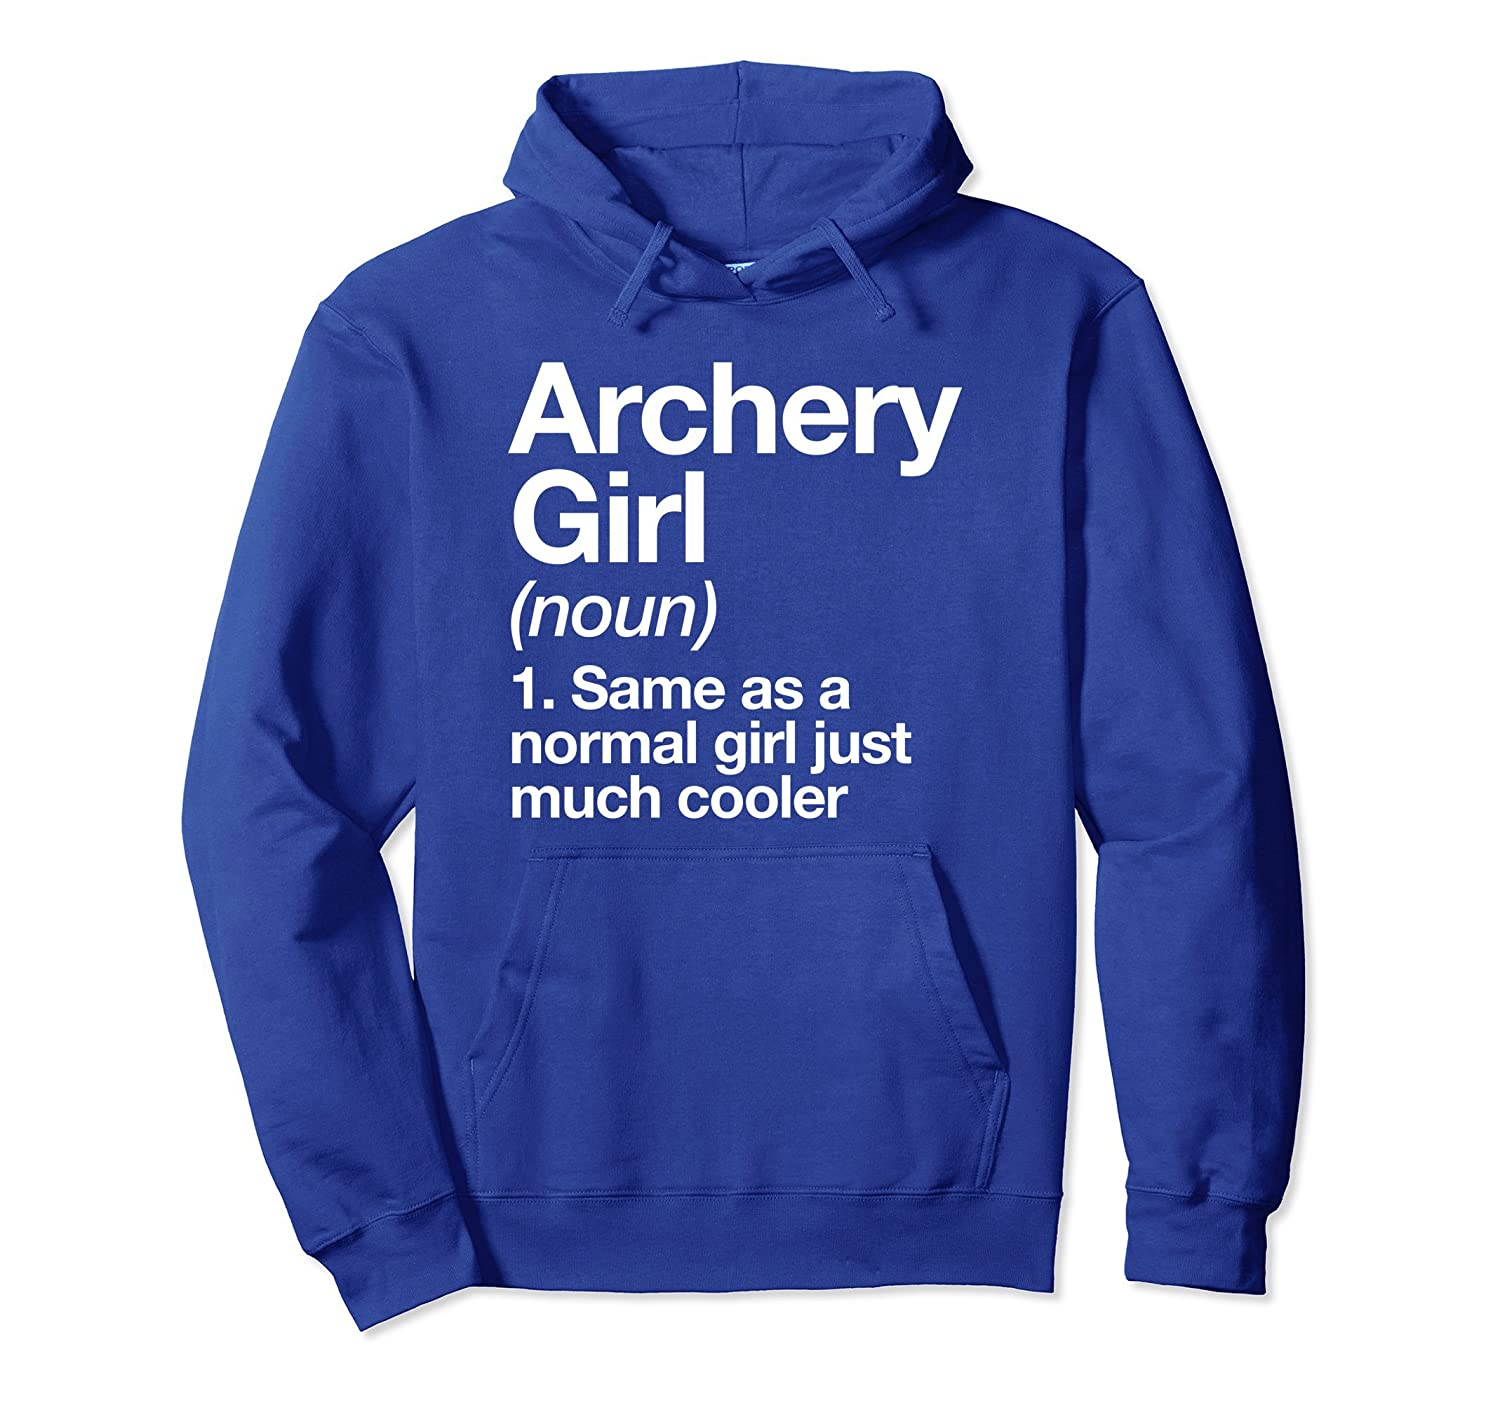 Archery Girl Definition Hoodie Funny Sports Pullover-mt